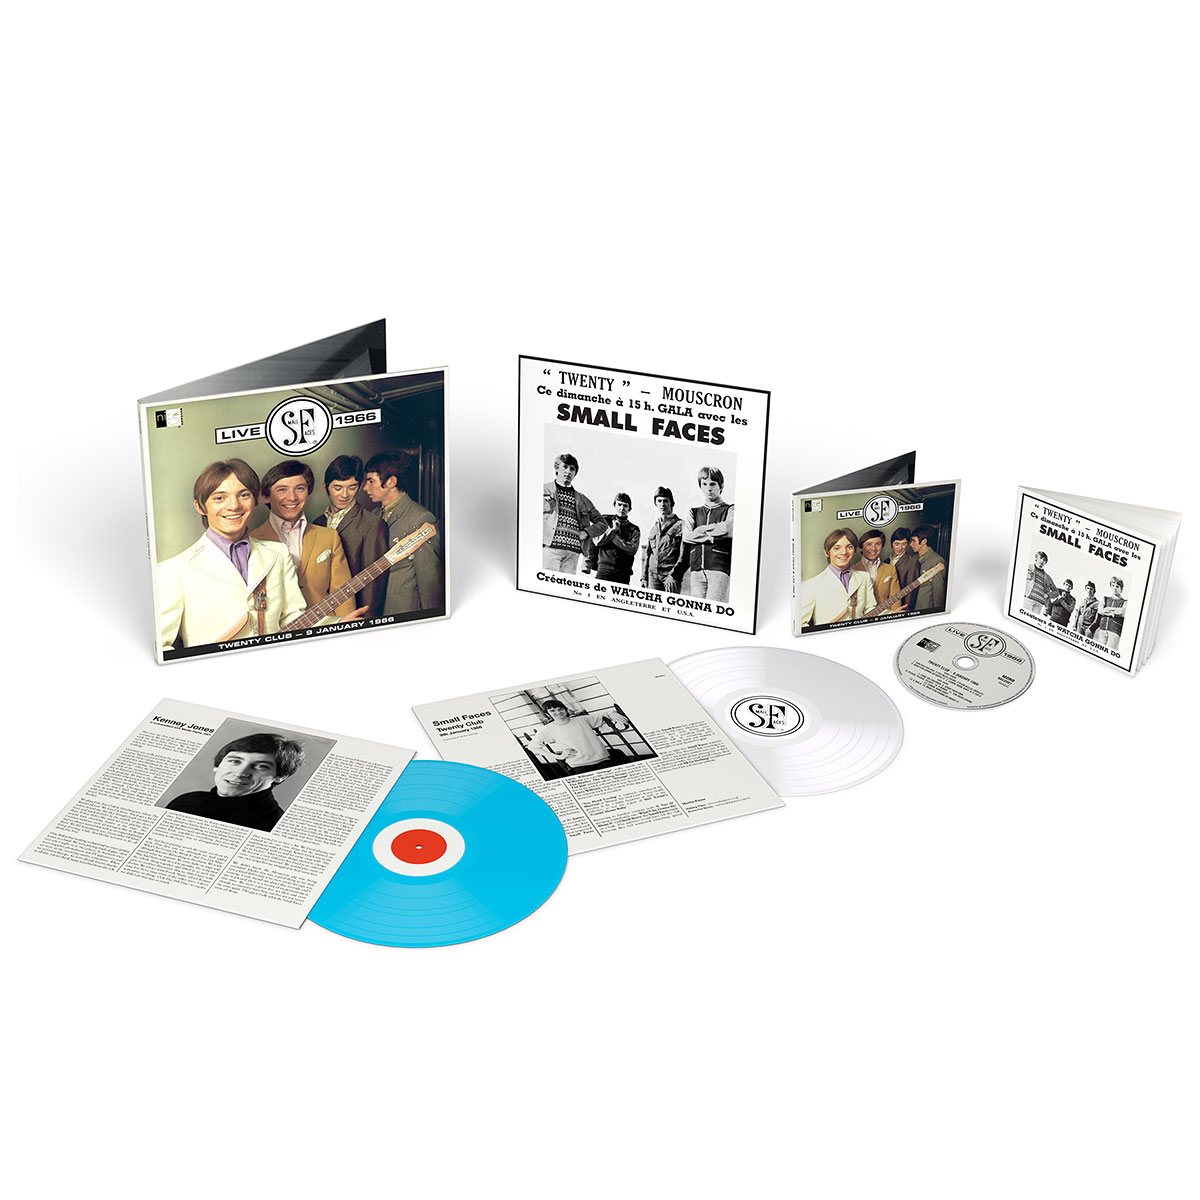 Small Faces Live 1966 - Coloured Vinyl and CD edition